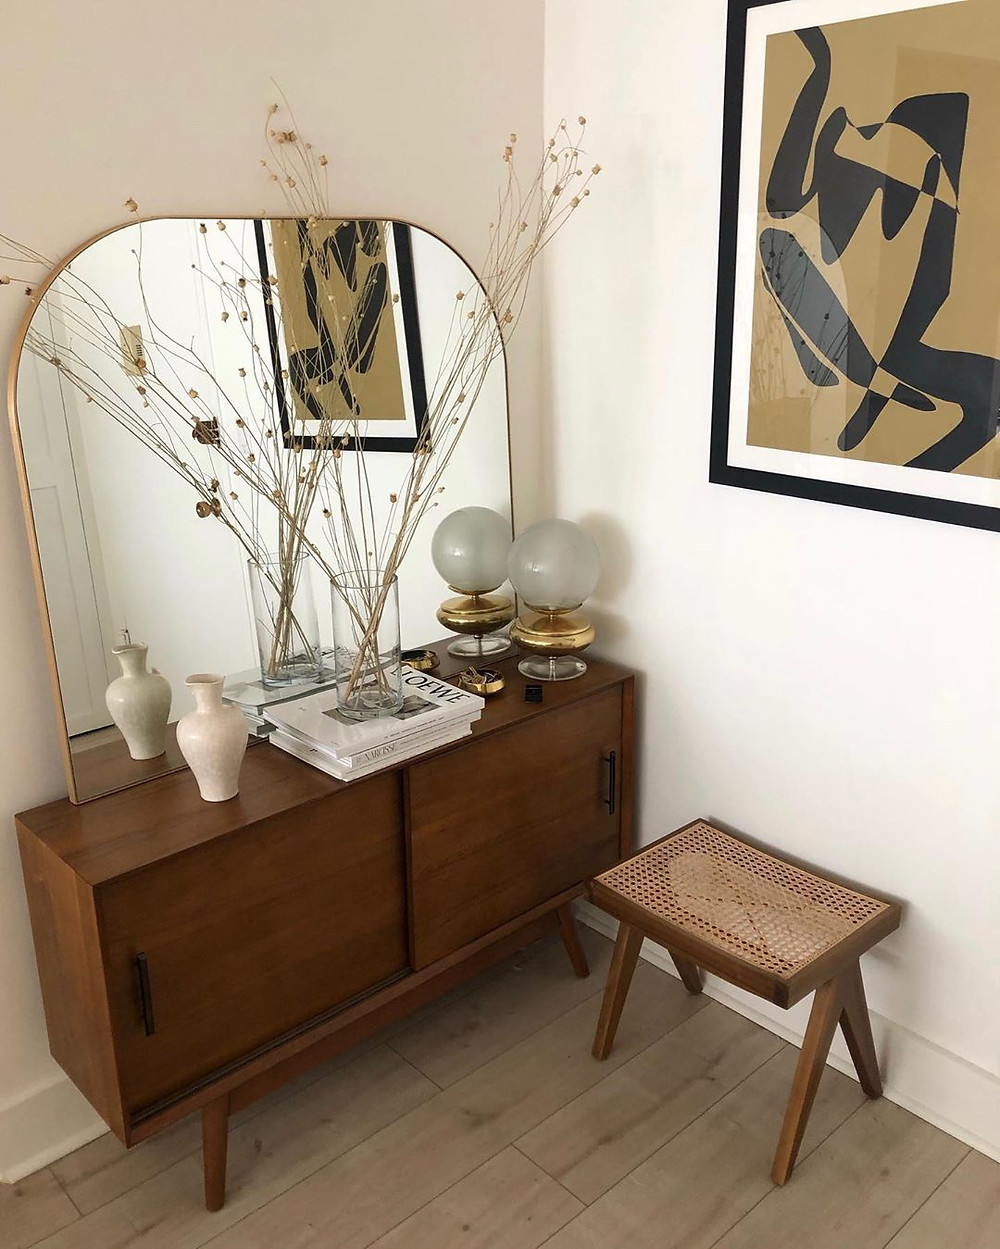 Styling tips mid century console styling branches in vase modern art